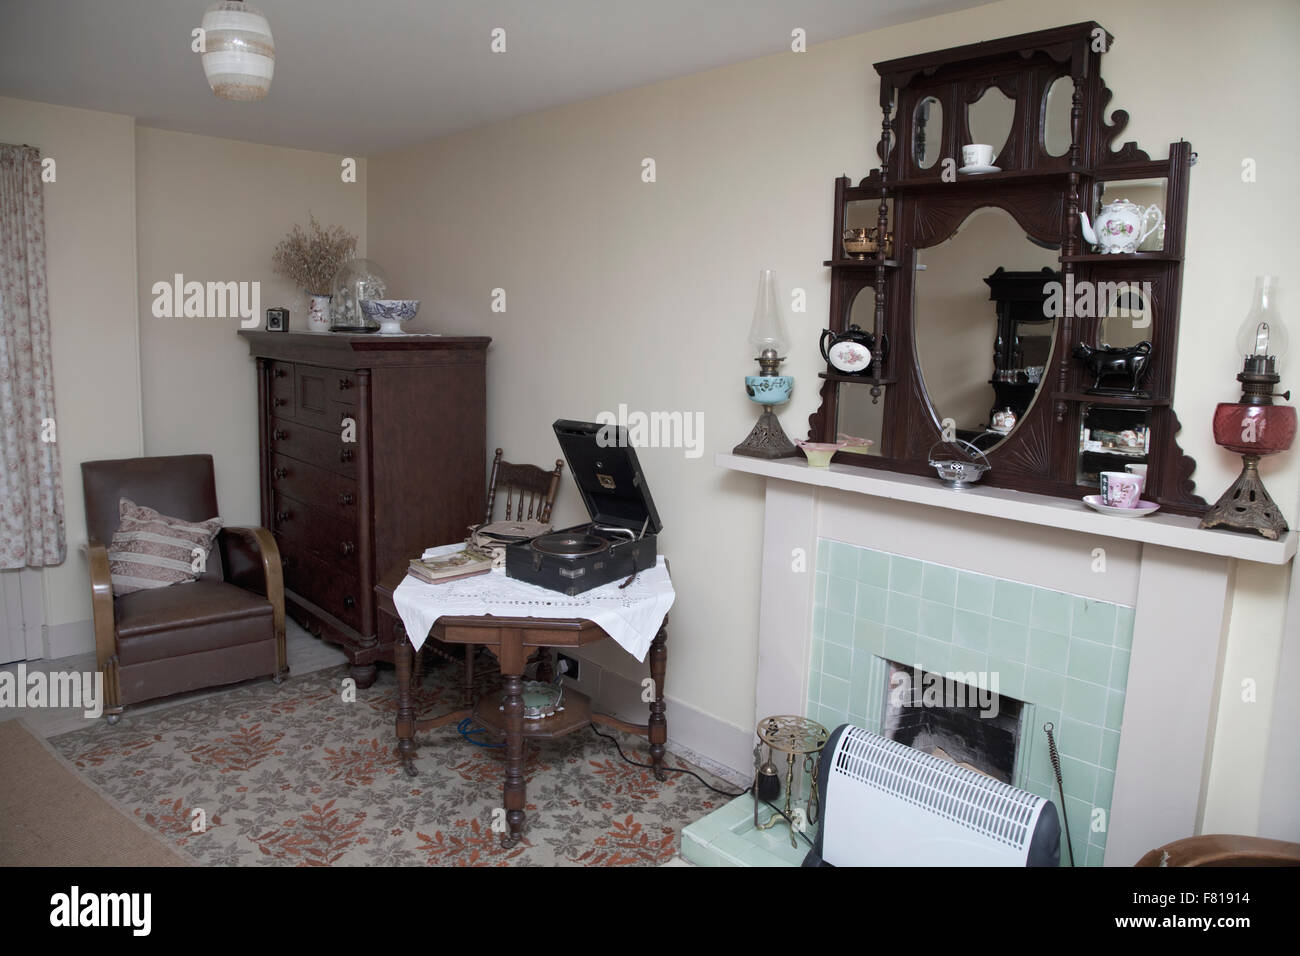 1950s house interior. Old Fashioned Living Room  British 1950s Style Stock Photo 90998128